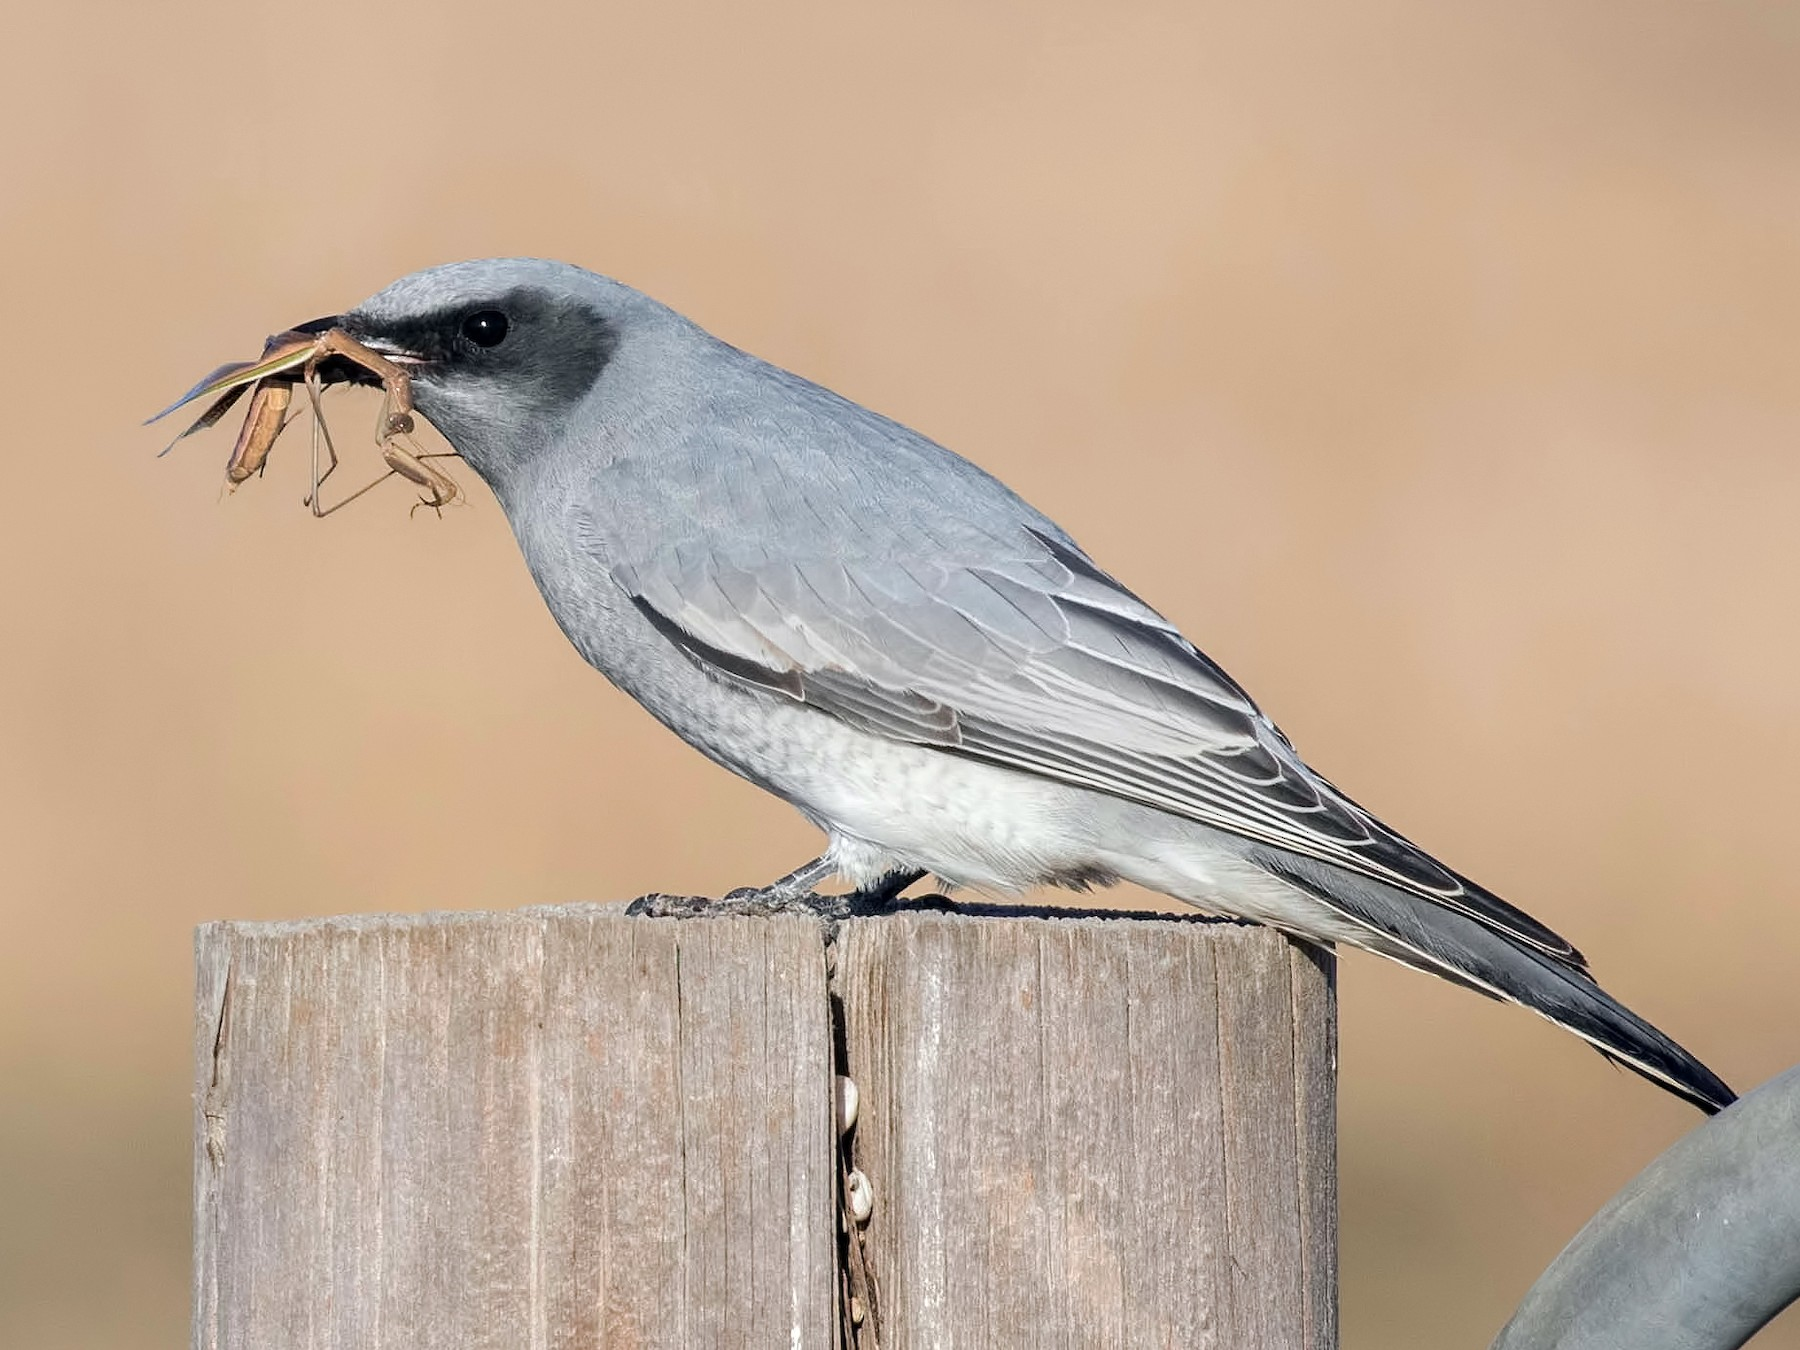 Black-faced Cuckooshrike - Feathers & Beyond Photography Luke Leddy